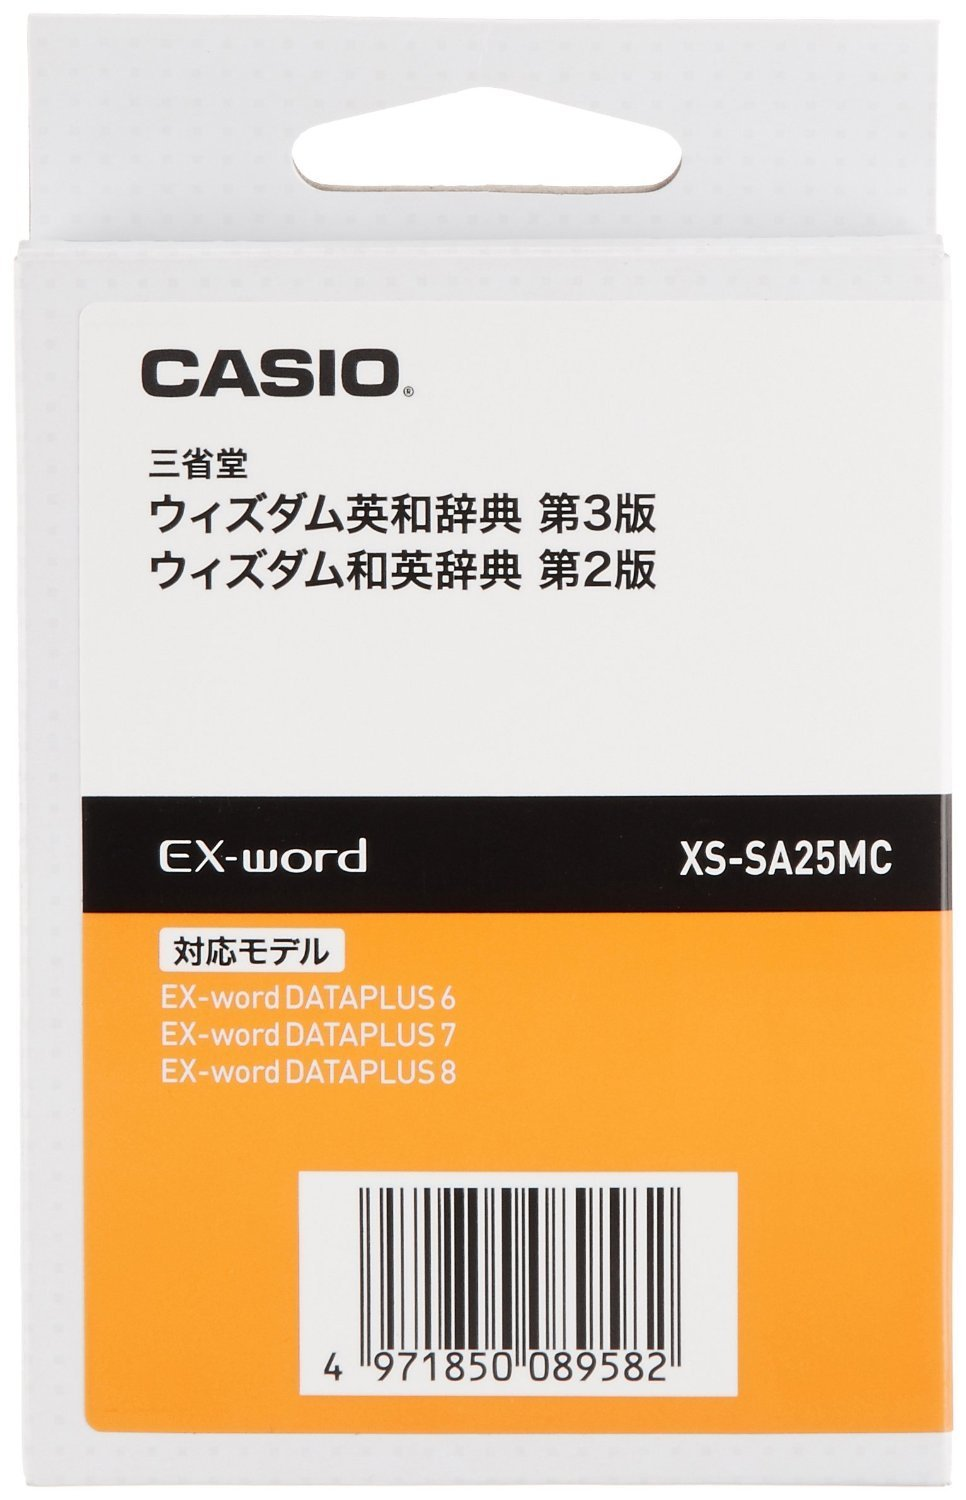 Casio electronic dictionary add content microSD card version of Wisdom English-Japanese Japanese-English dictionary XS-SA25MC by Casio (Image #3)